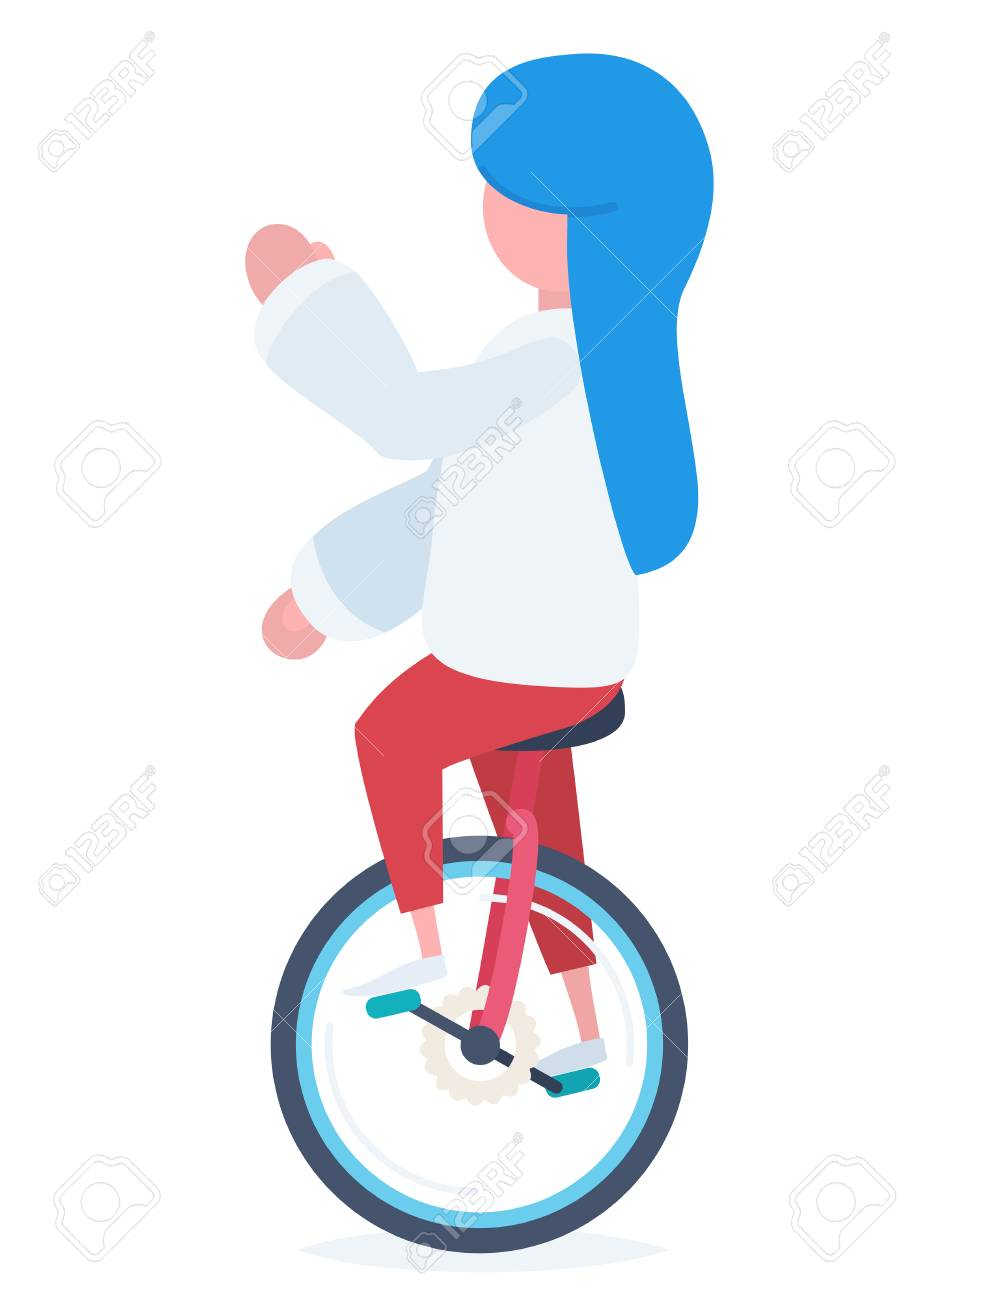 A girl with blue hair riding a colorful unicycle and looking to the left Stock Vector - 44592907